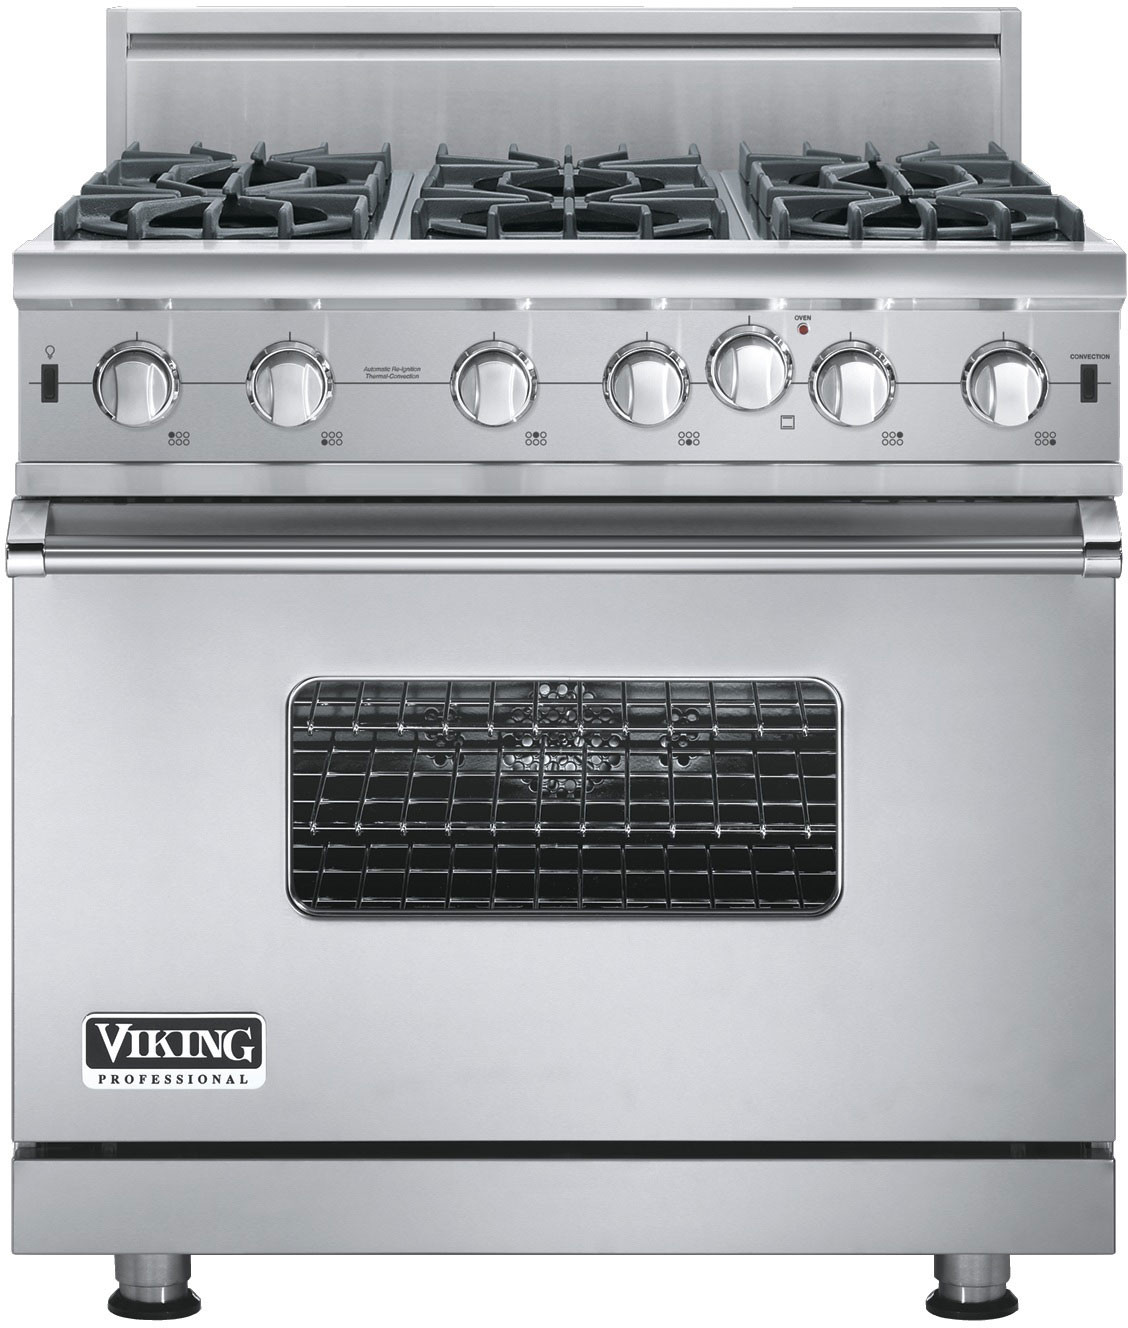 are thor stoves level restaurant stainless range and hoods steel your appliances bring made kitchen cooking ranges to professional home